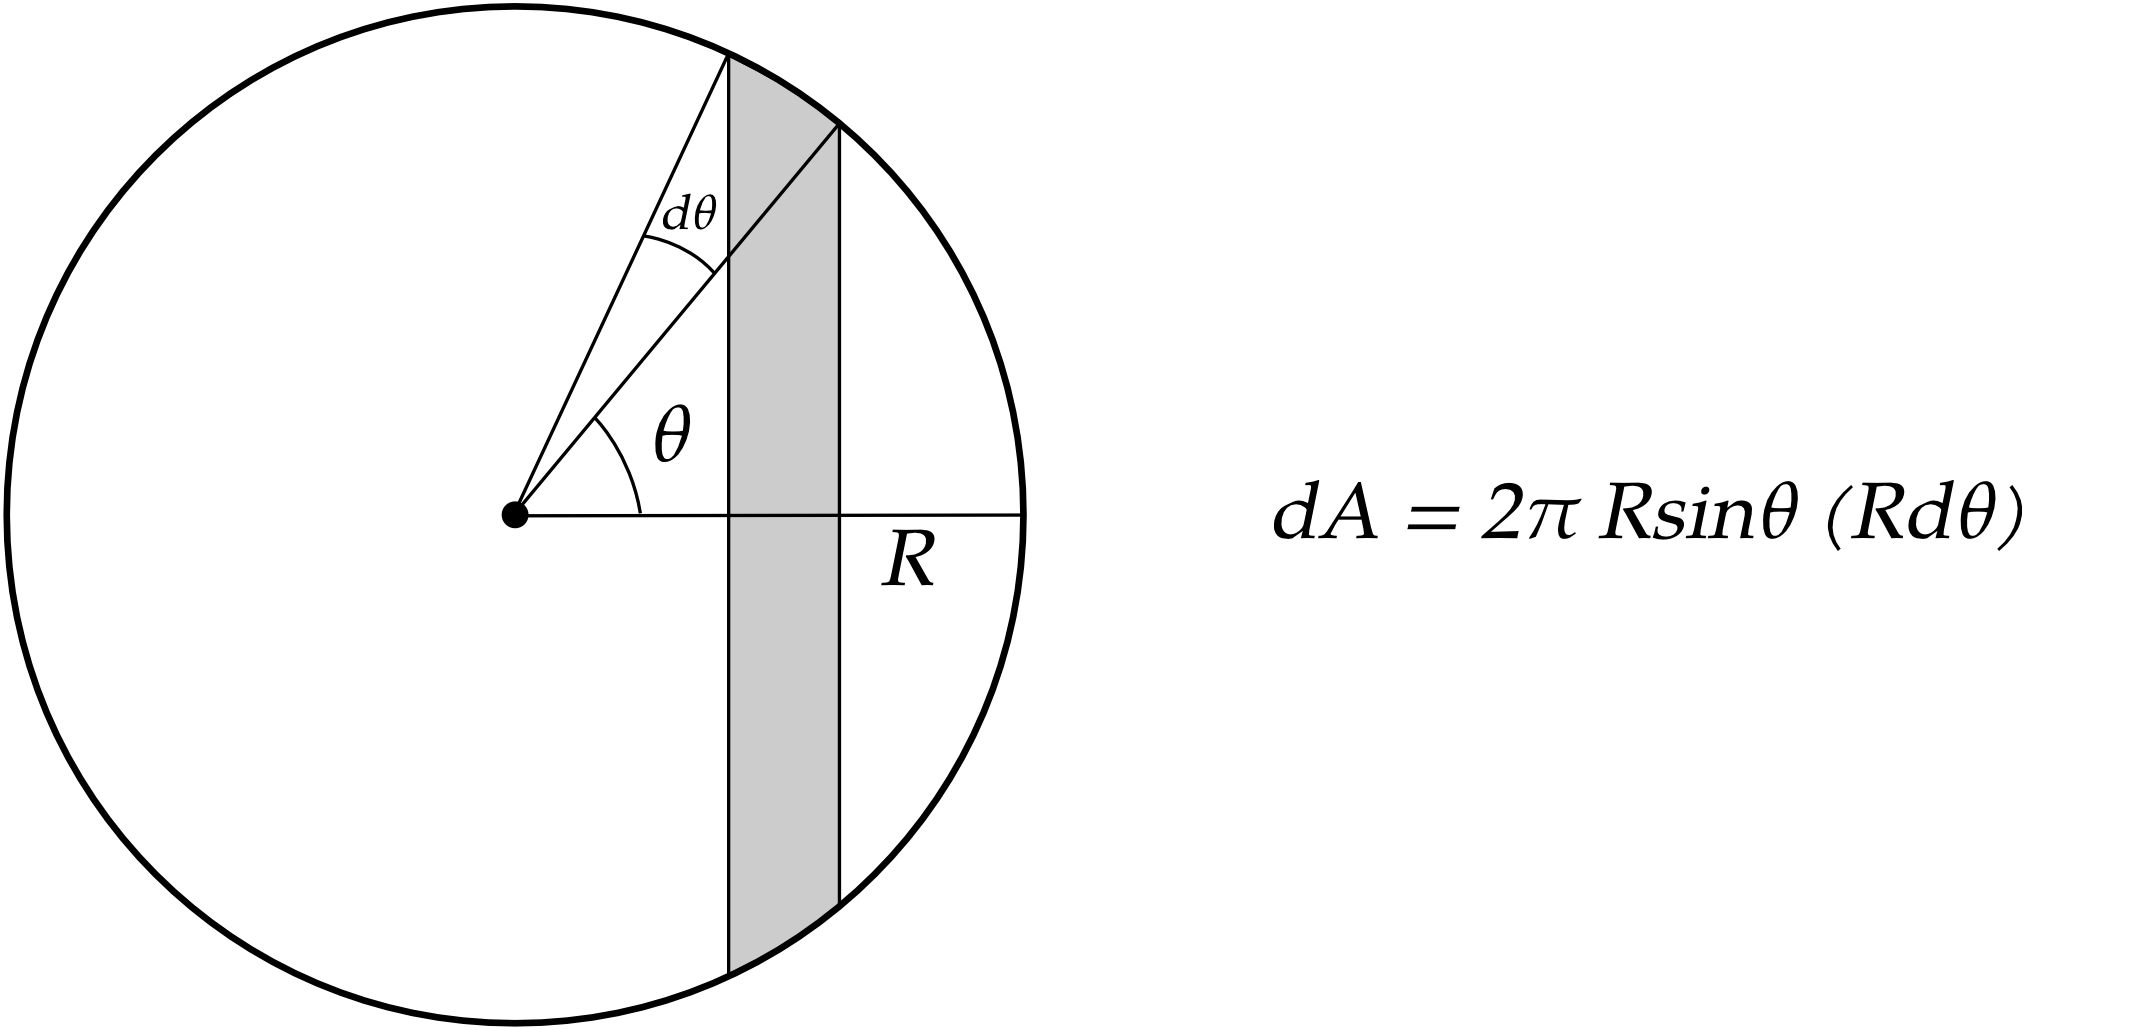 Fallacy In Integration Technique To Find A Sphere S